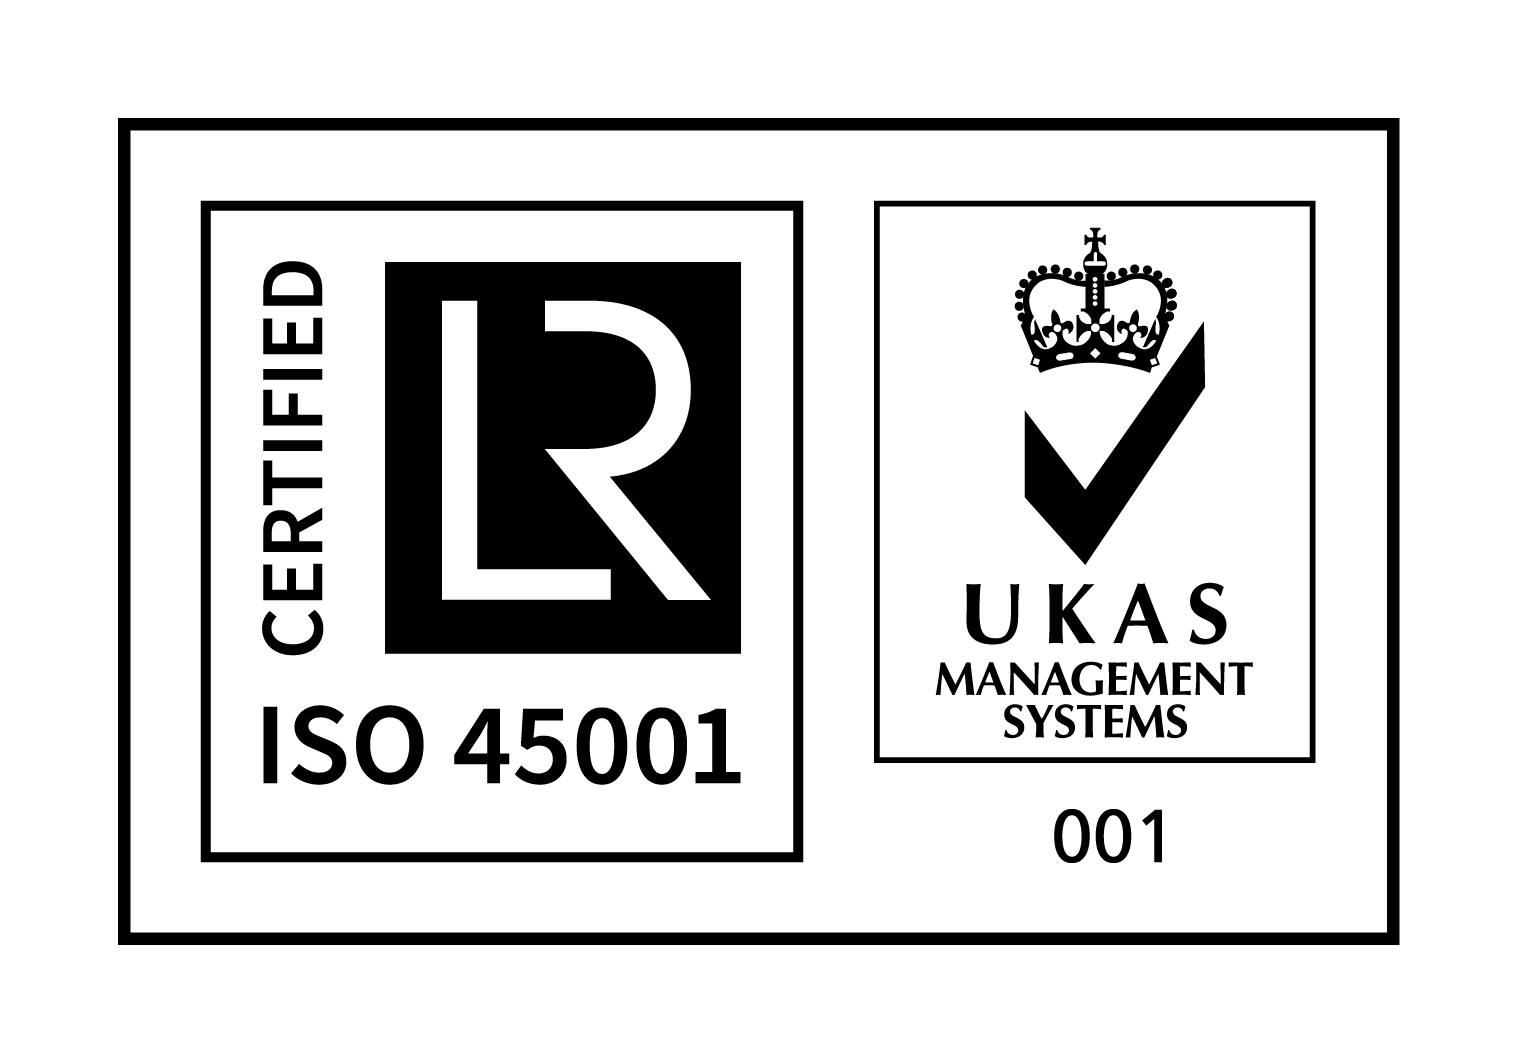 ukas-and-iso-45001